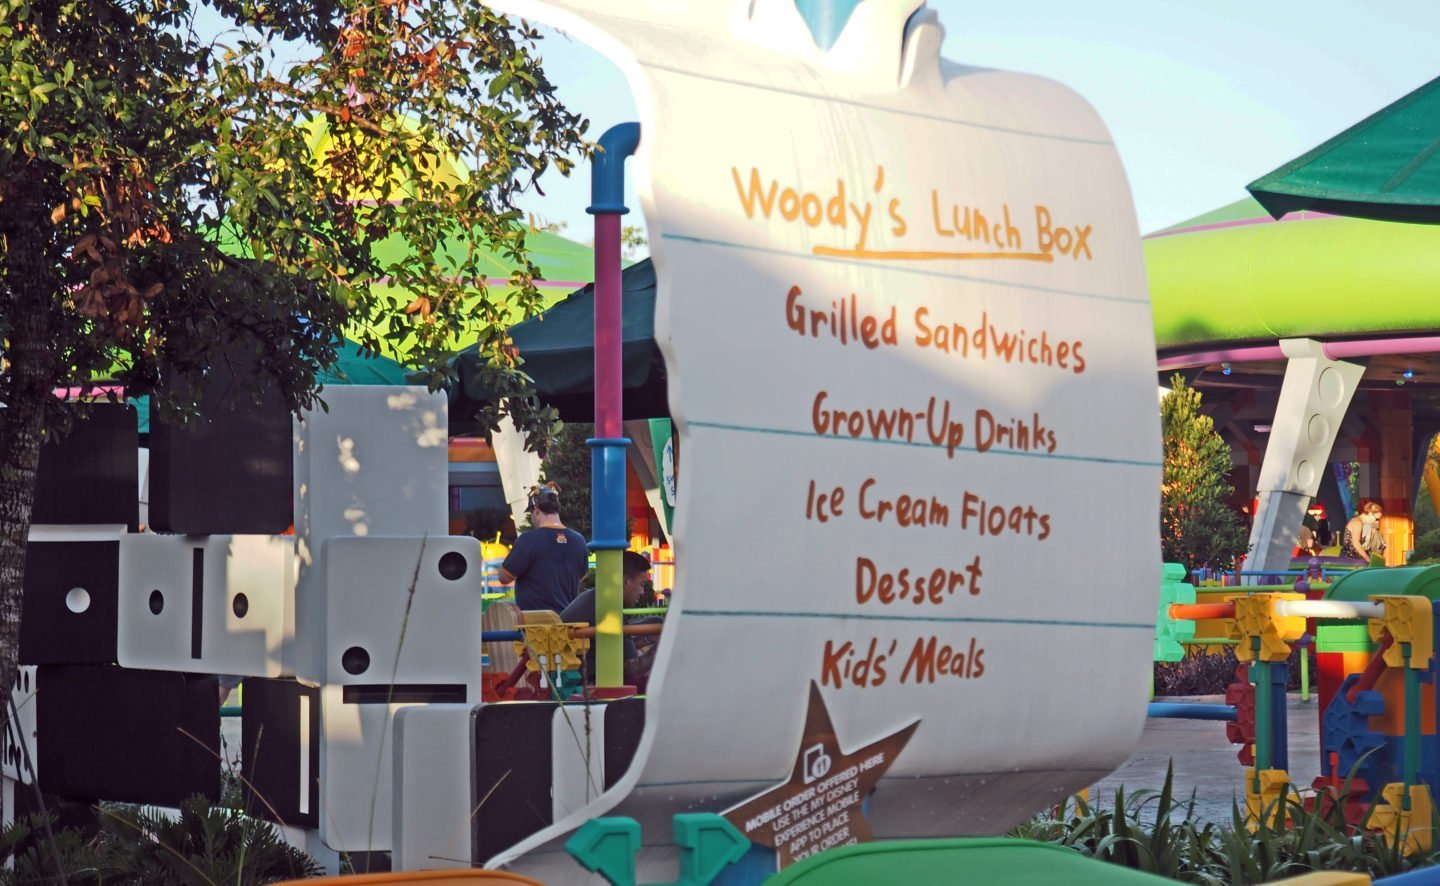 Toy Story Land Woody's Lunch Box at Walt disney World Hollywood Studios Restaurant Review #woodyslunchbox #disneydining #toystoryland